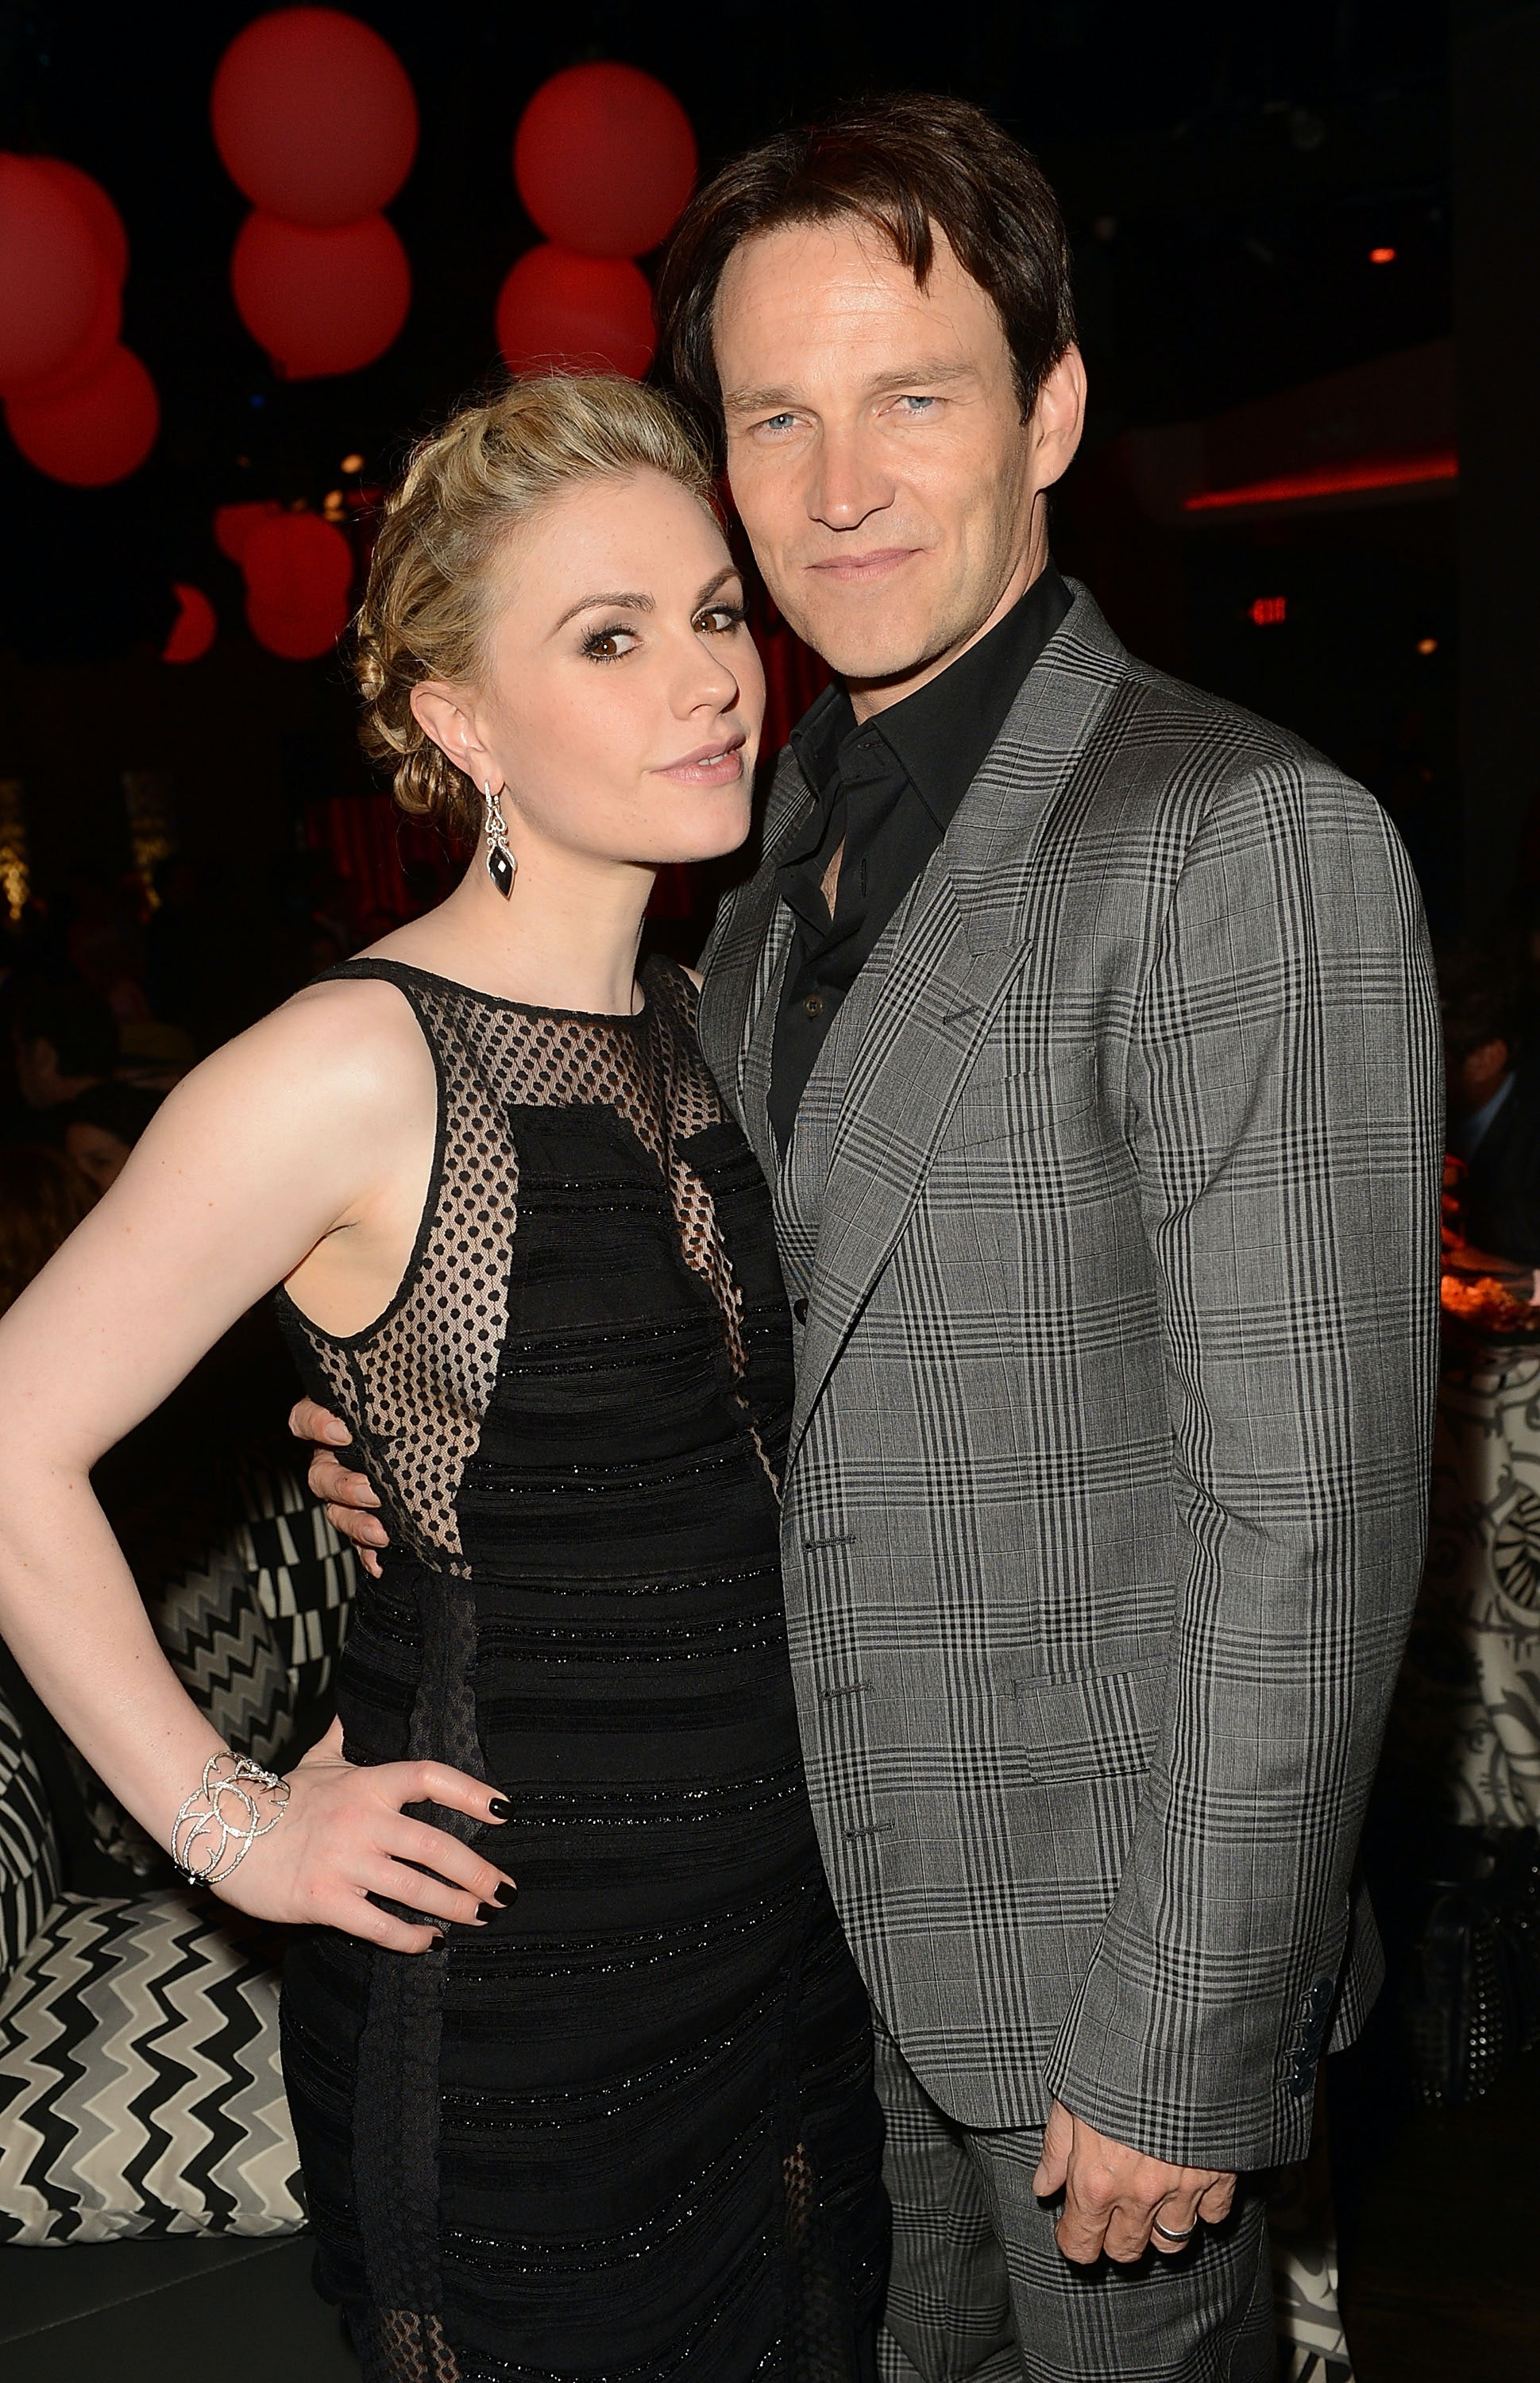 Anna paquin dating true blood costar